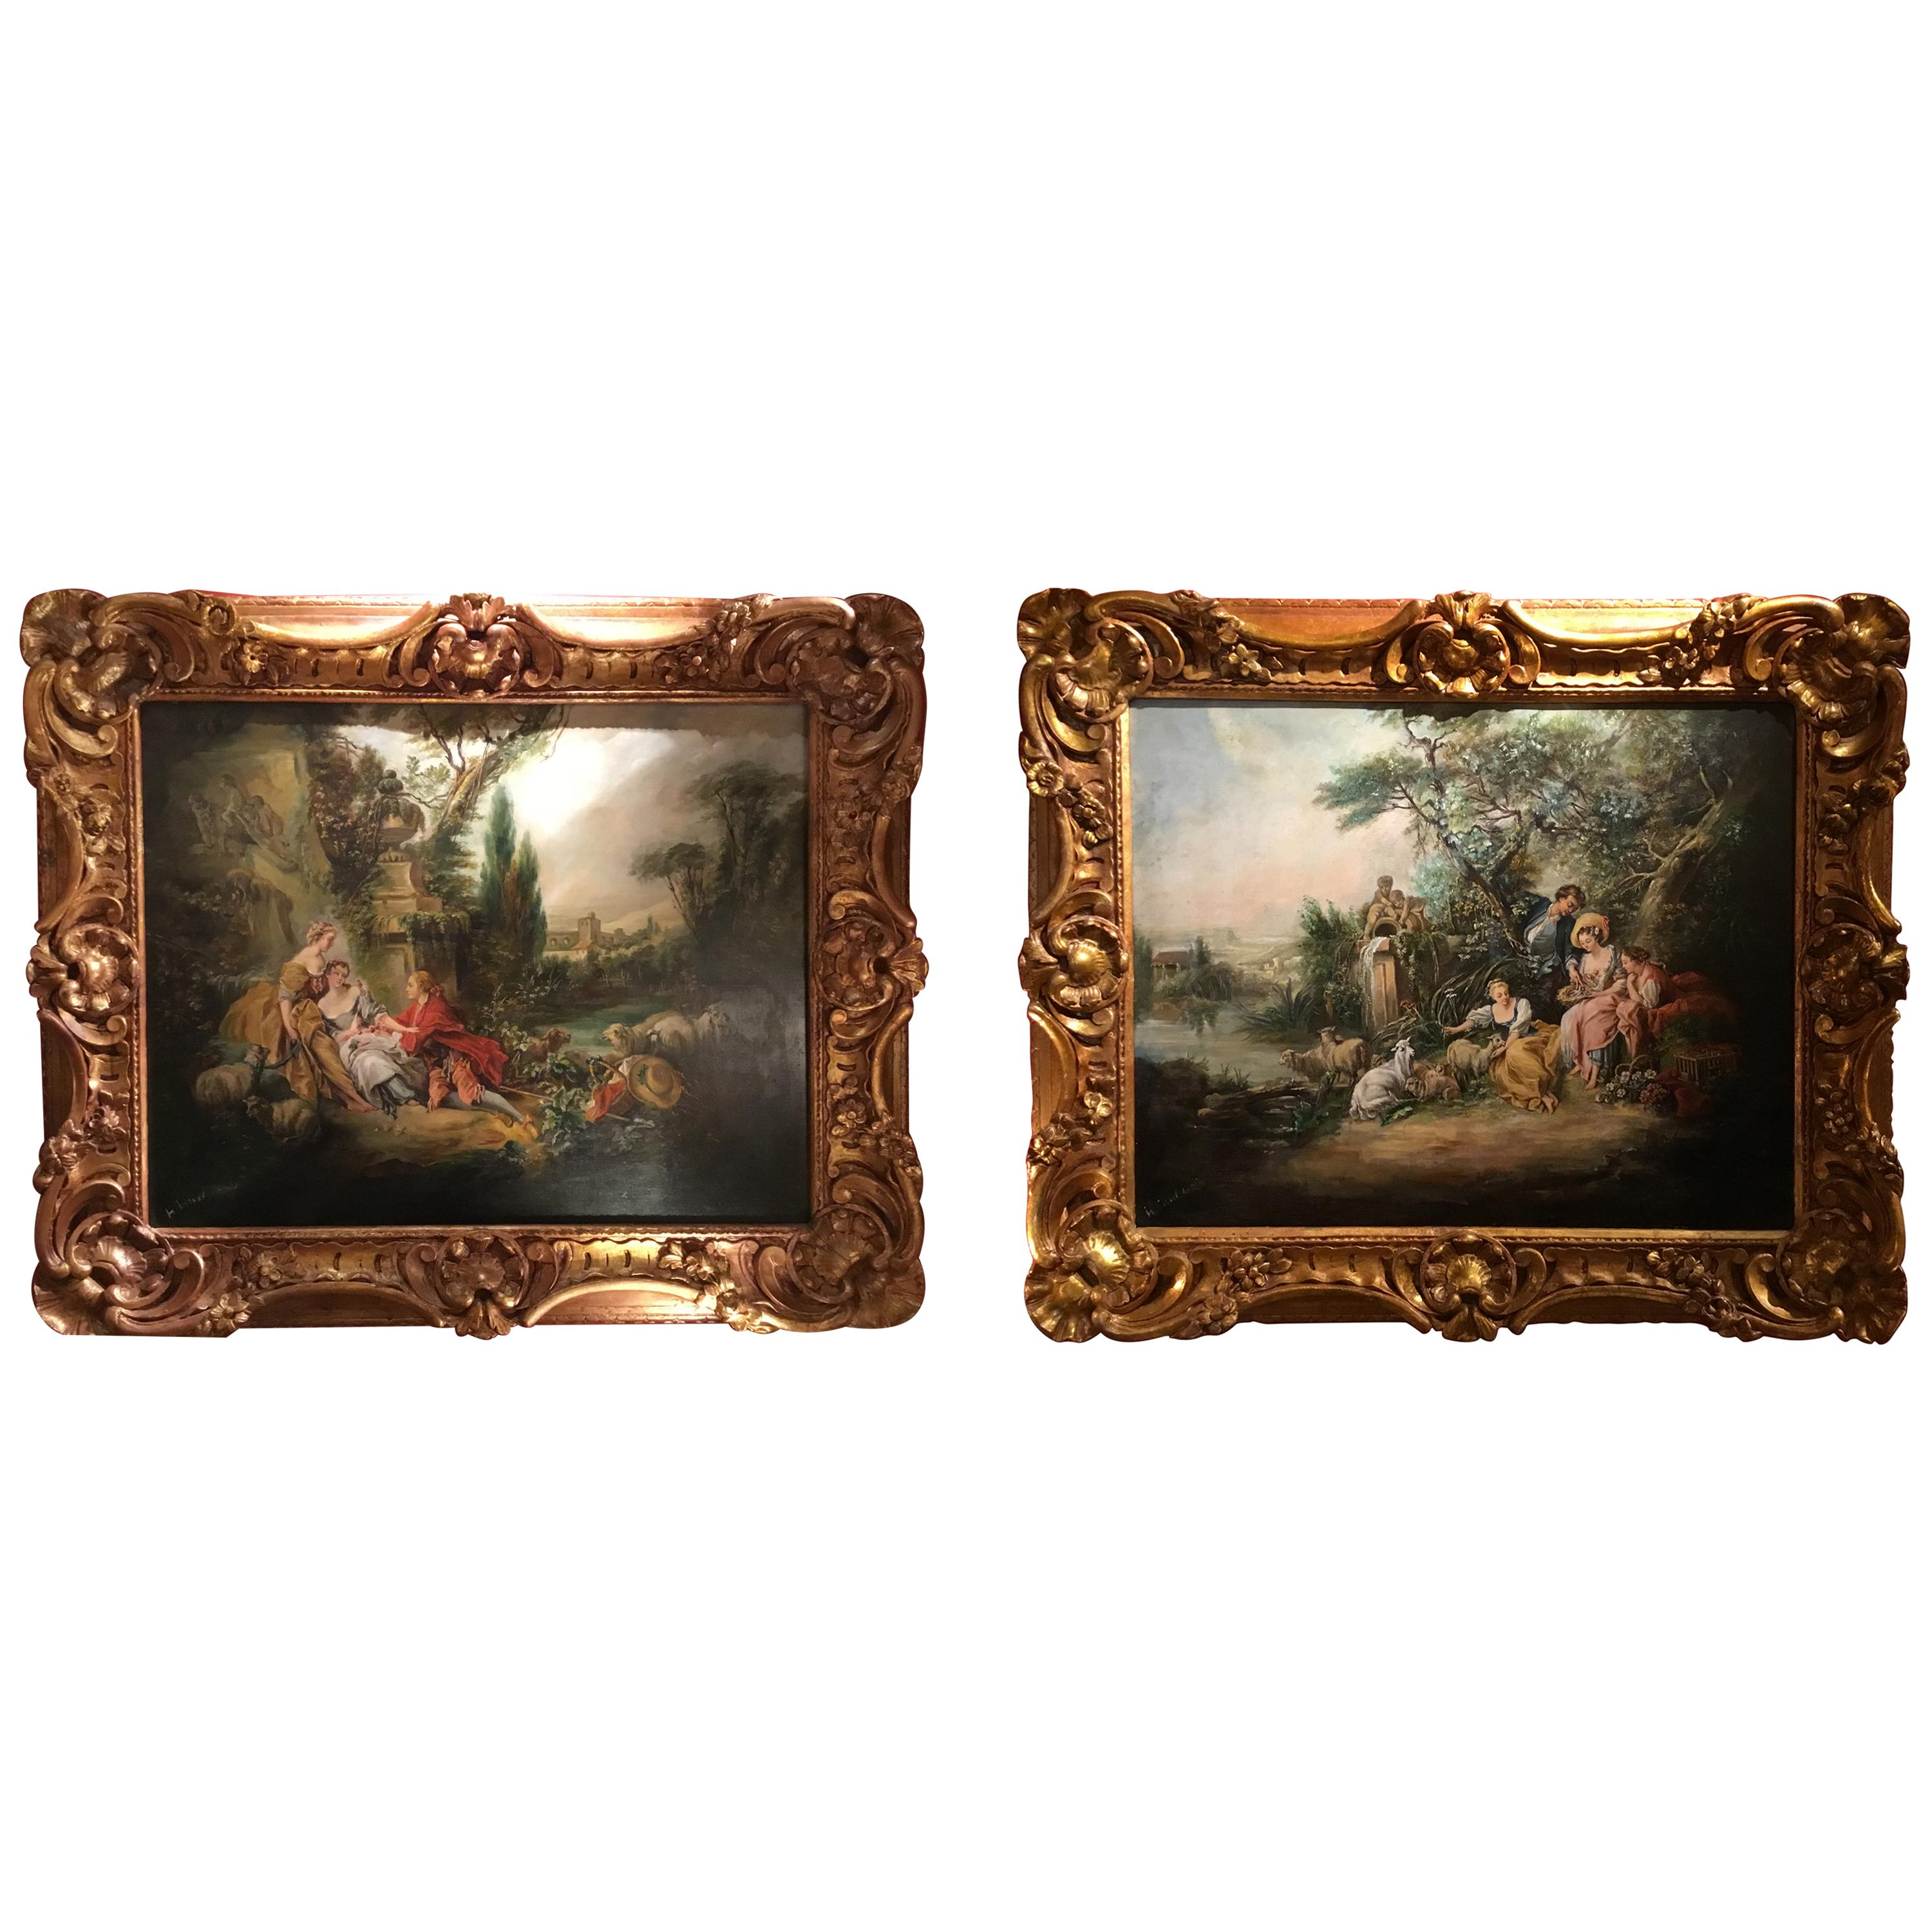 Pair of French 19th Century Oil Paintings after Francois Boucher in Gilt Frames